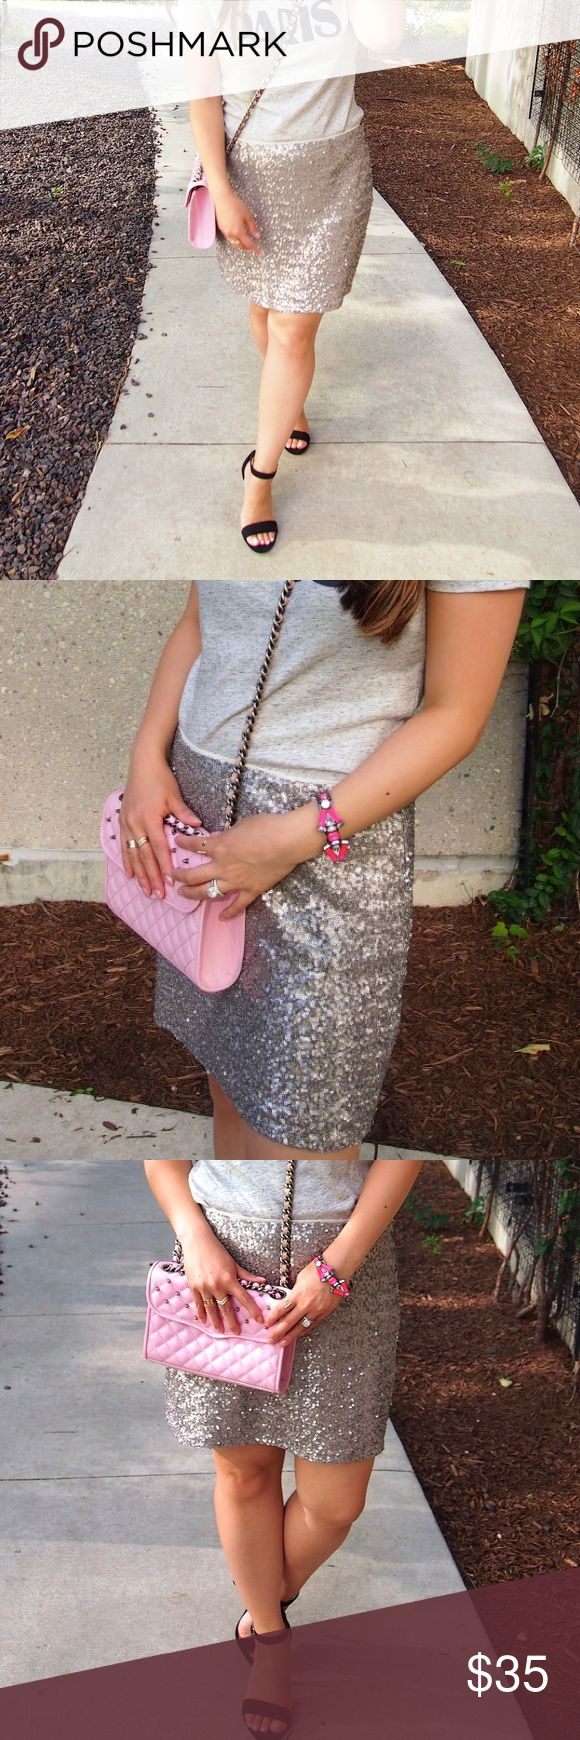 Silver Sequin Mini Skirt Gorgeous silver sequin mini skirt with cream lining. Worn a couple of times, excellent condition! GAP Skirts Mini